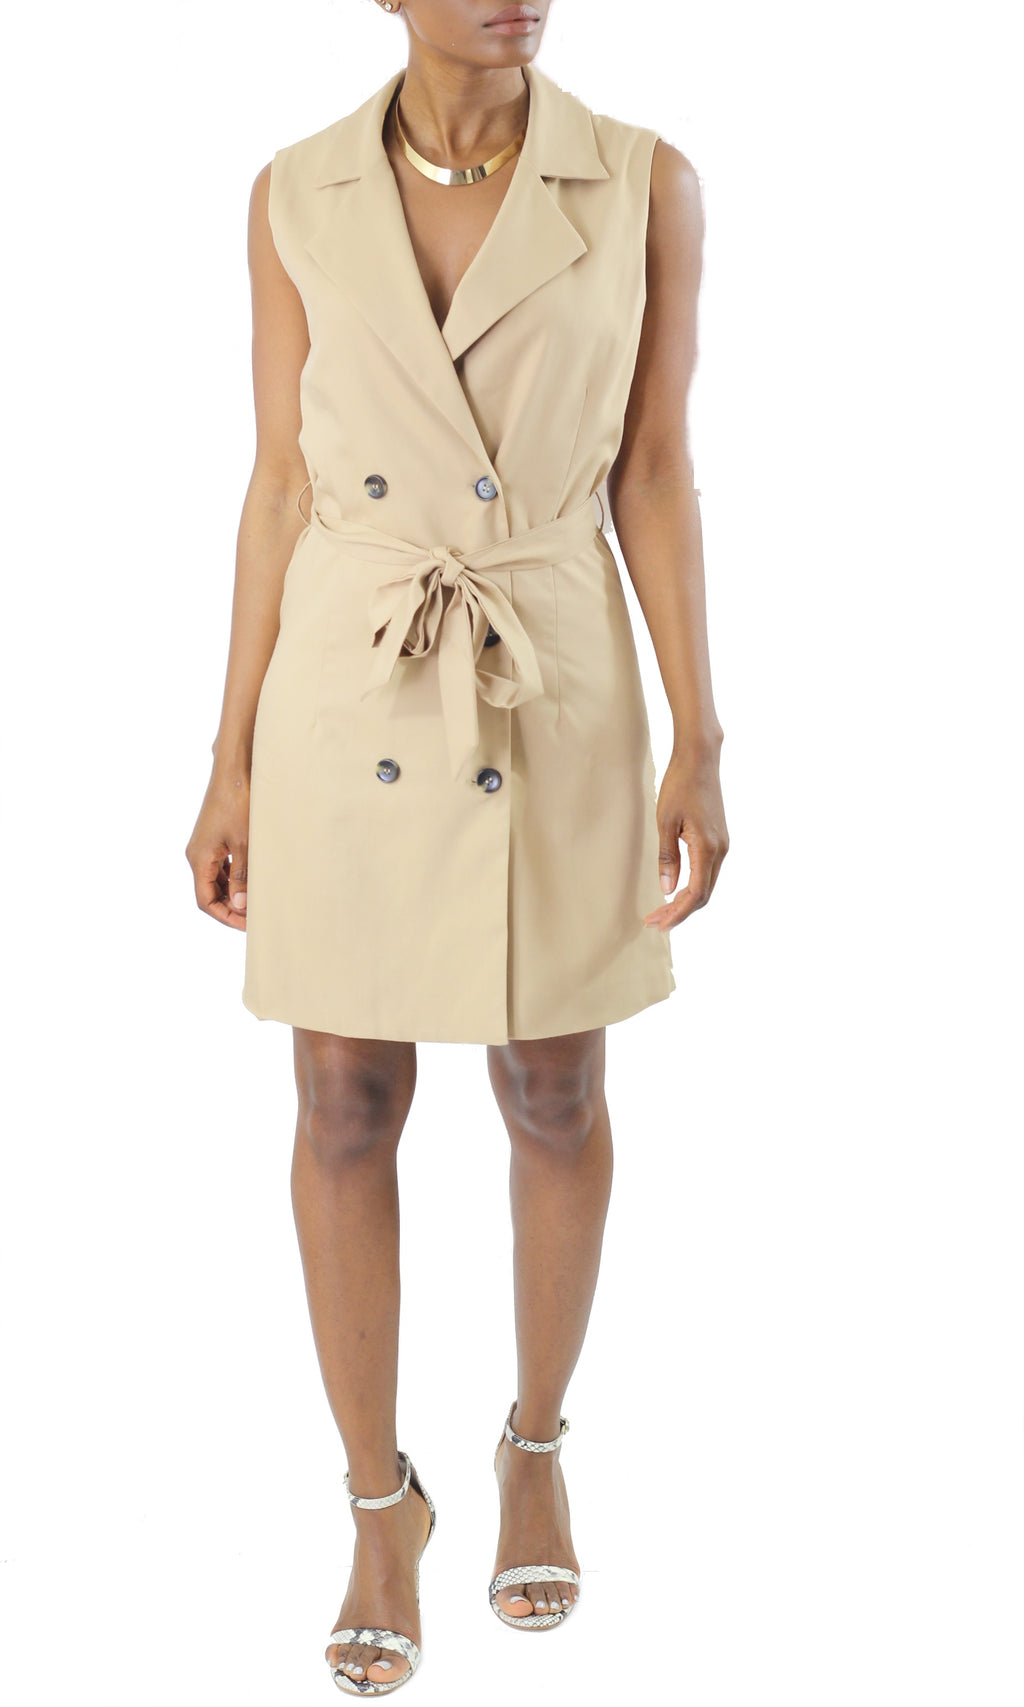 Sleeveless Trench Dress - Cultur'd Collective